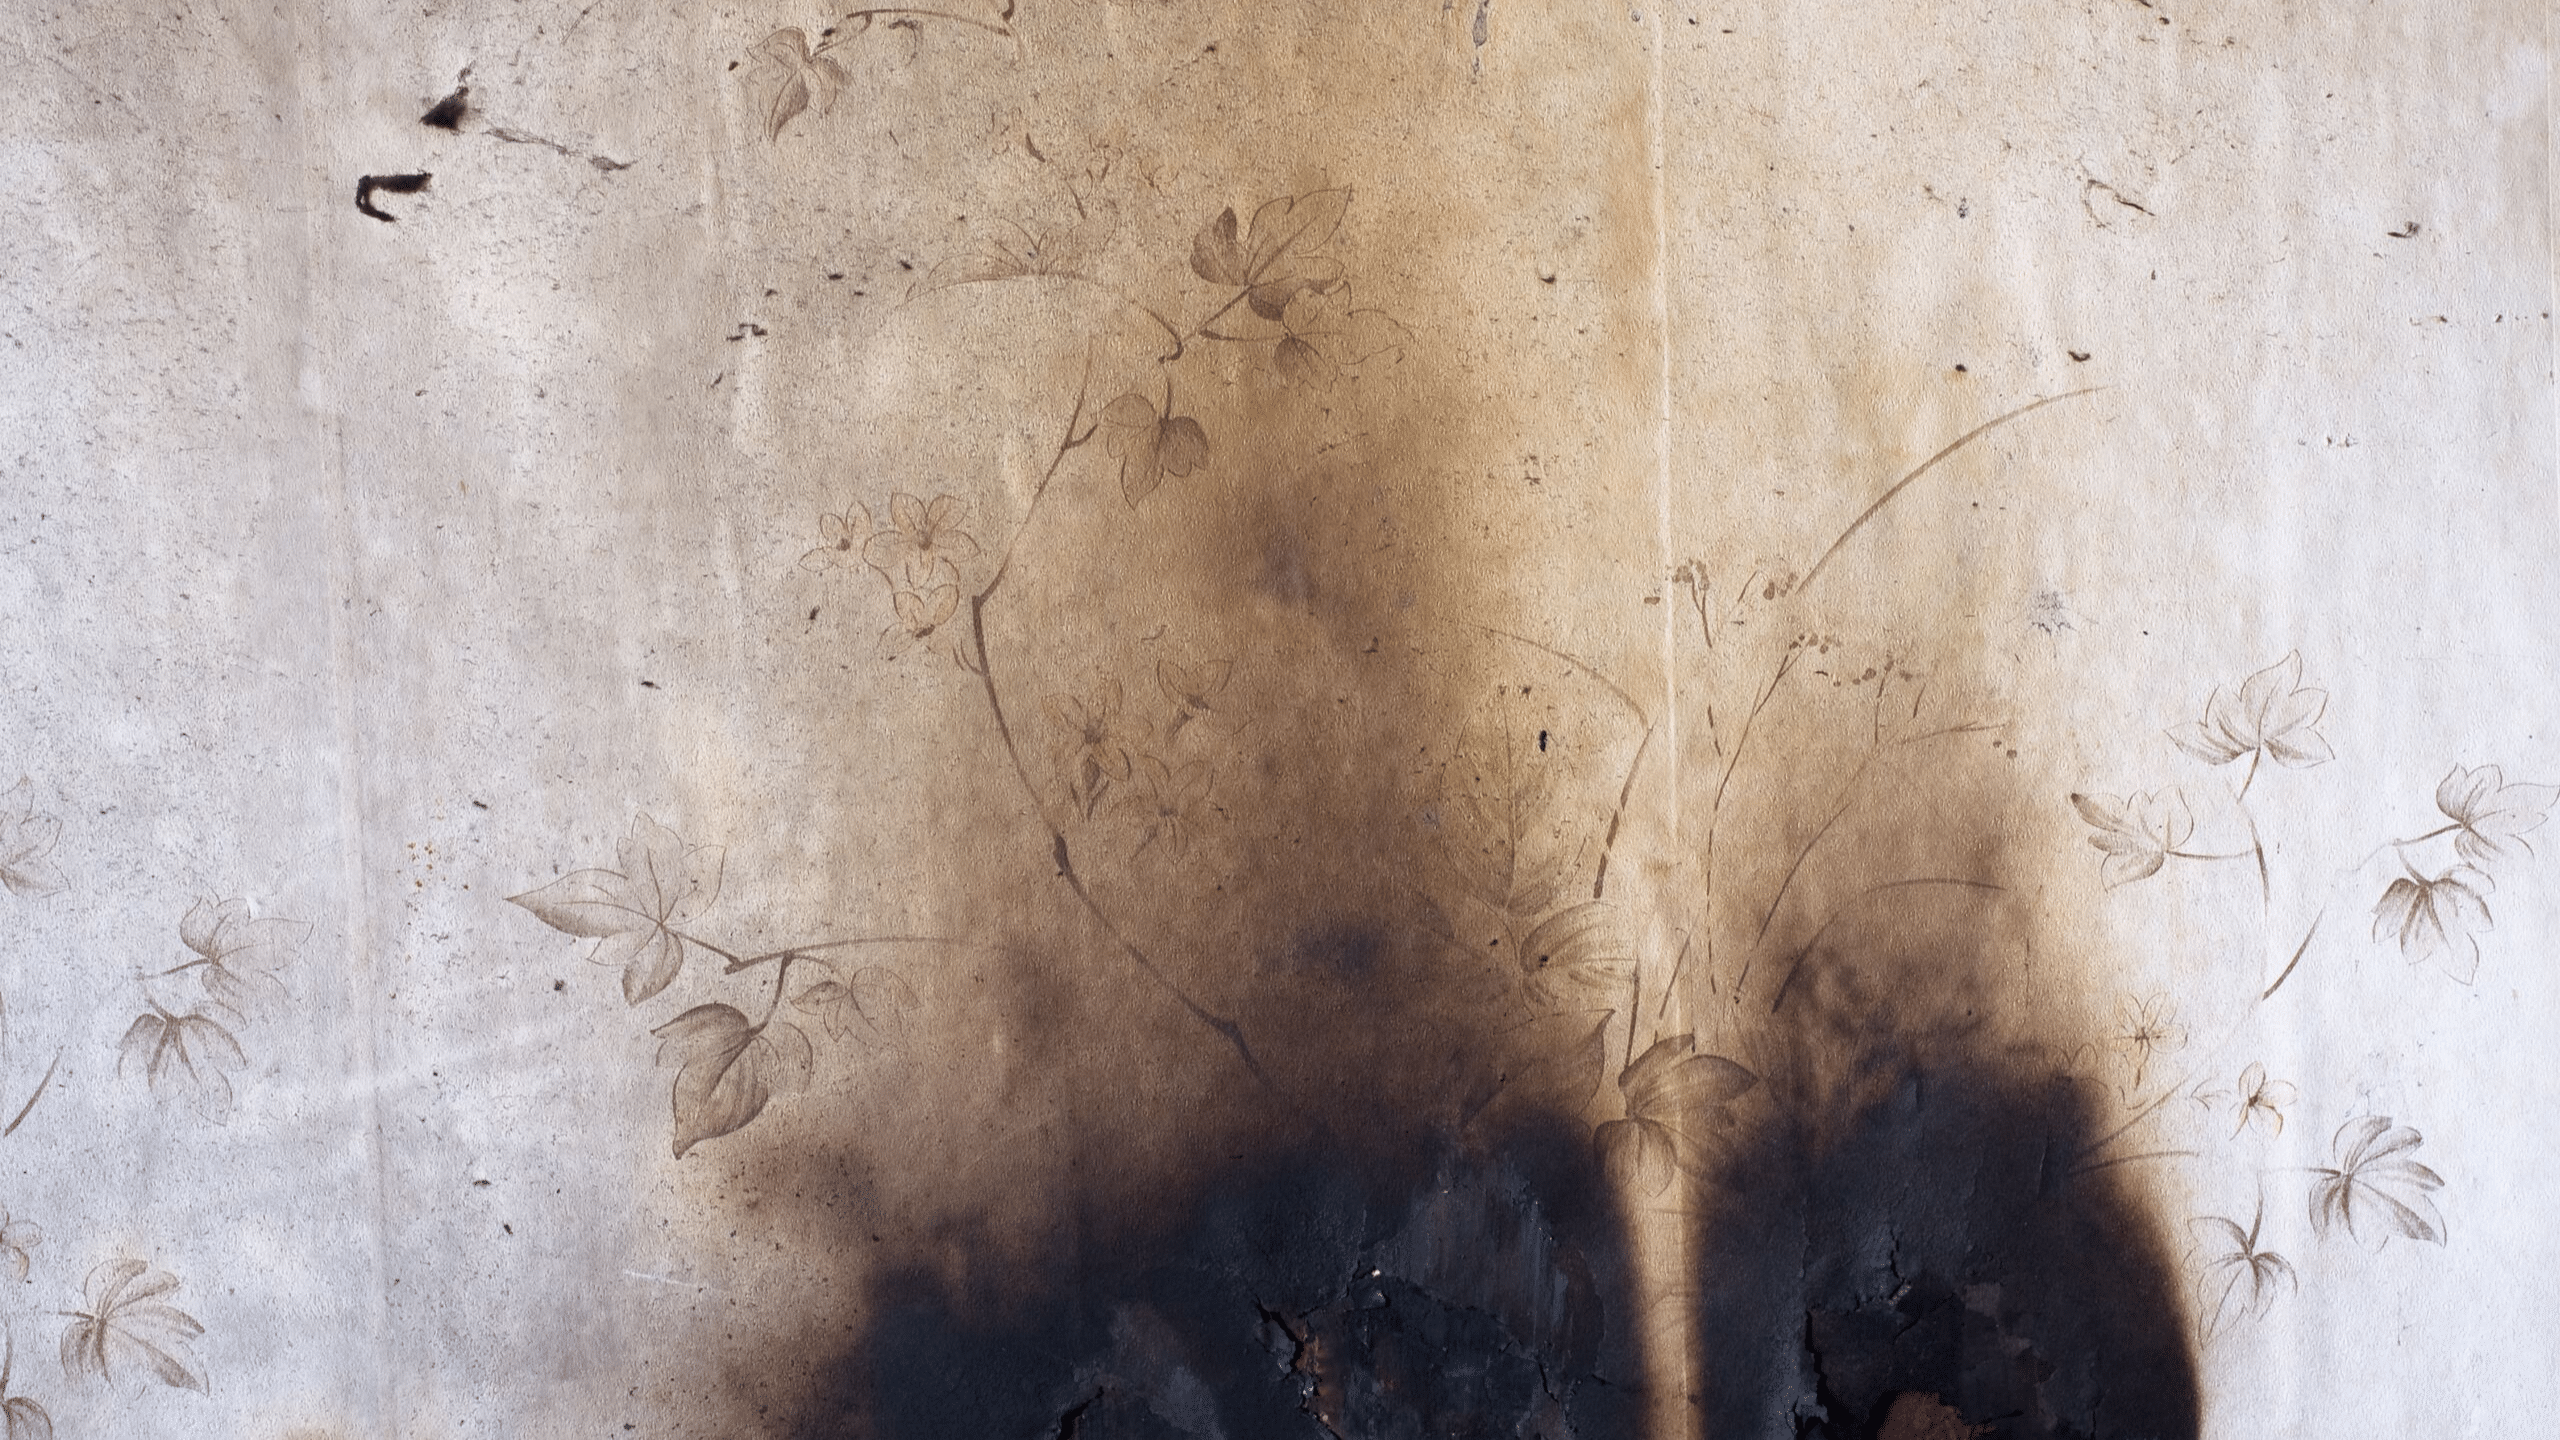 smoke damage on a wall